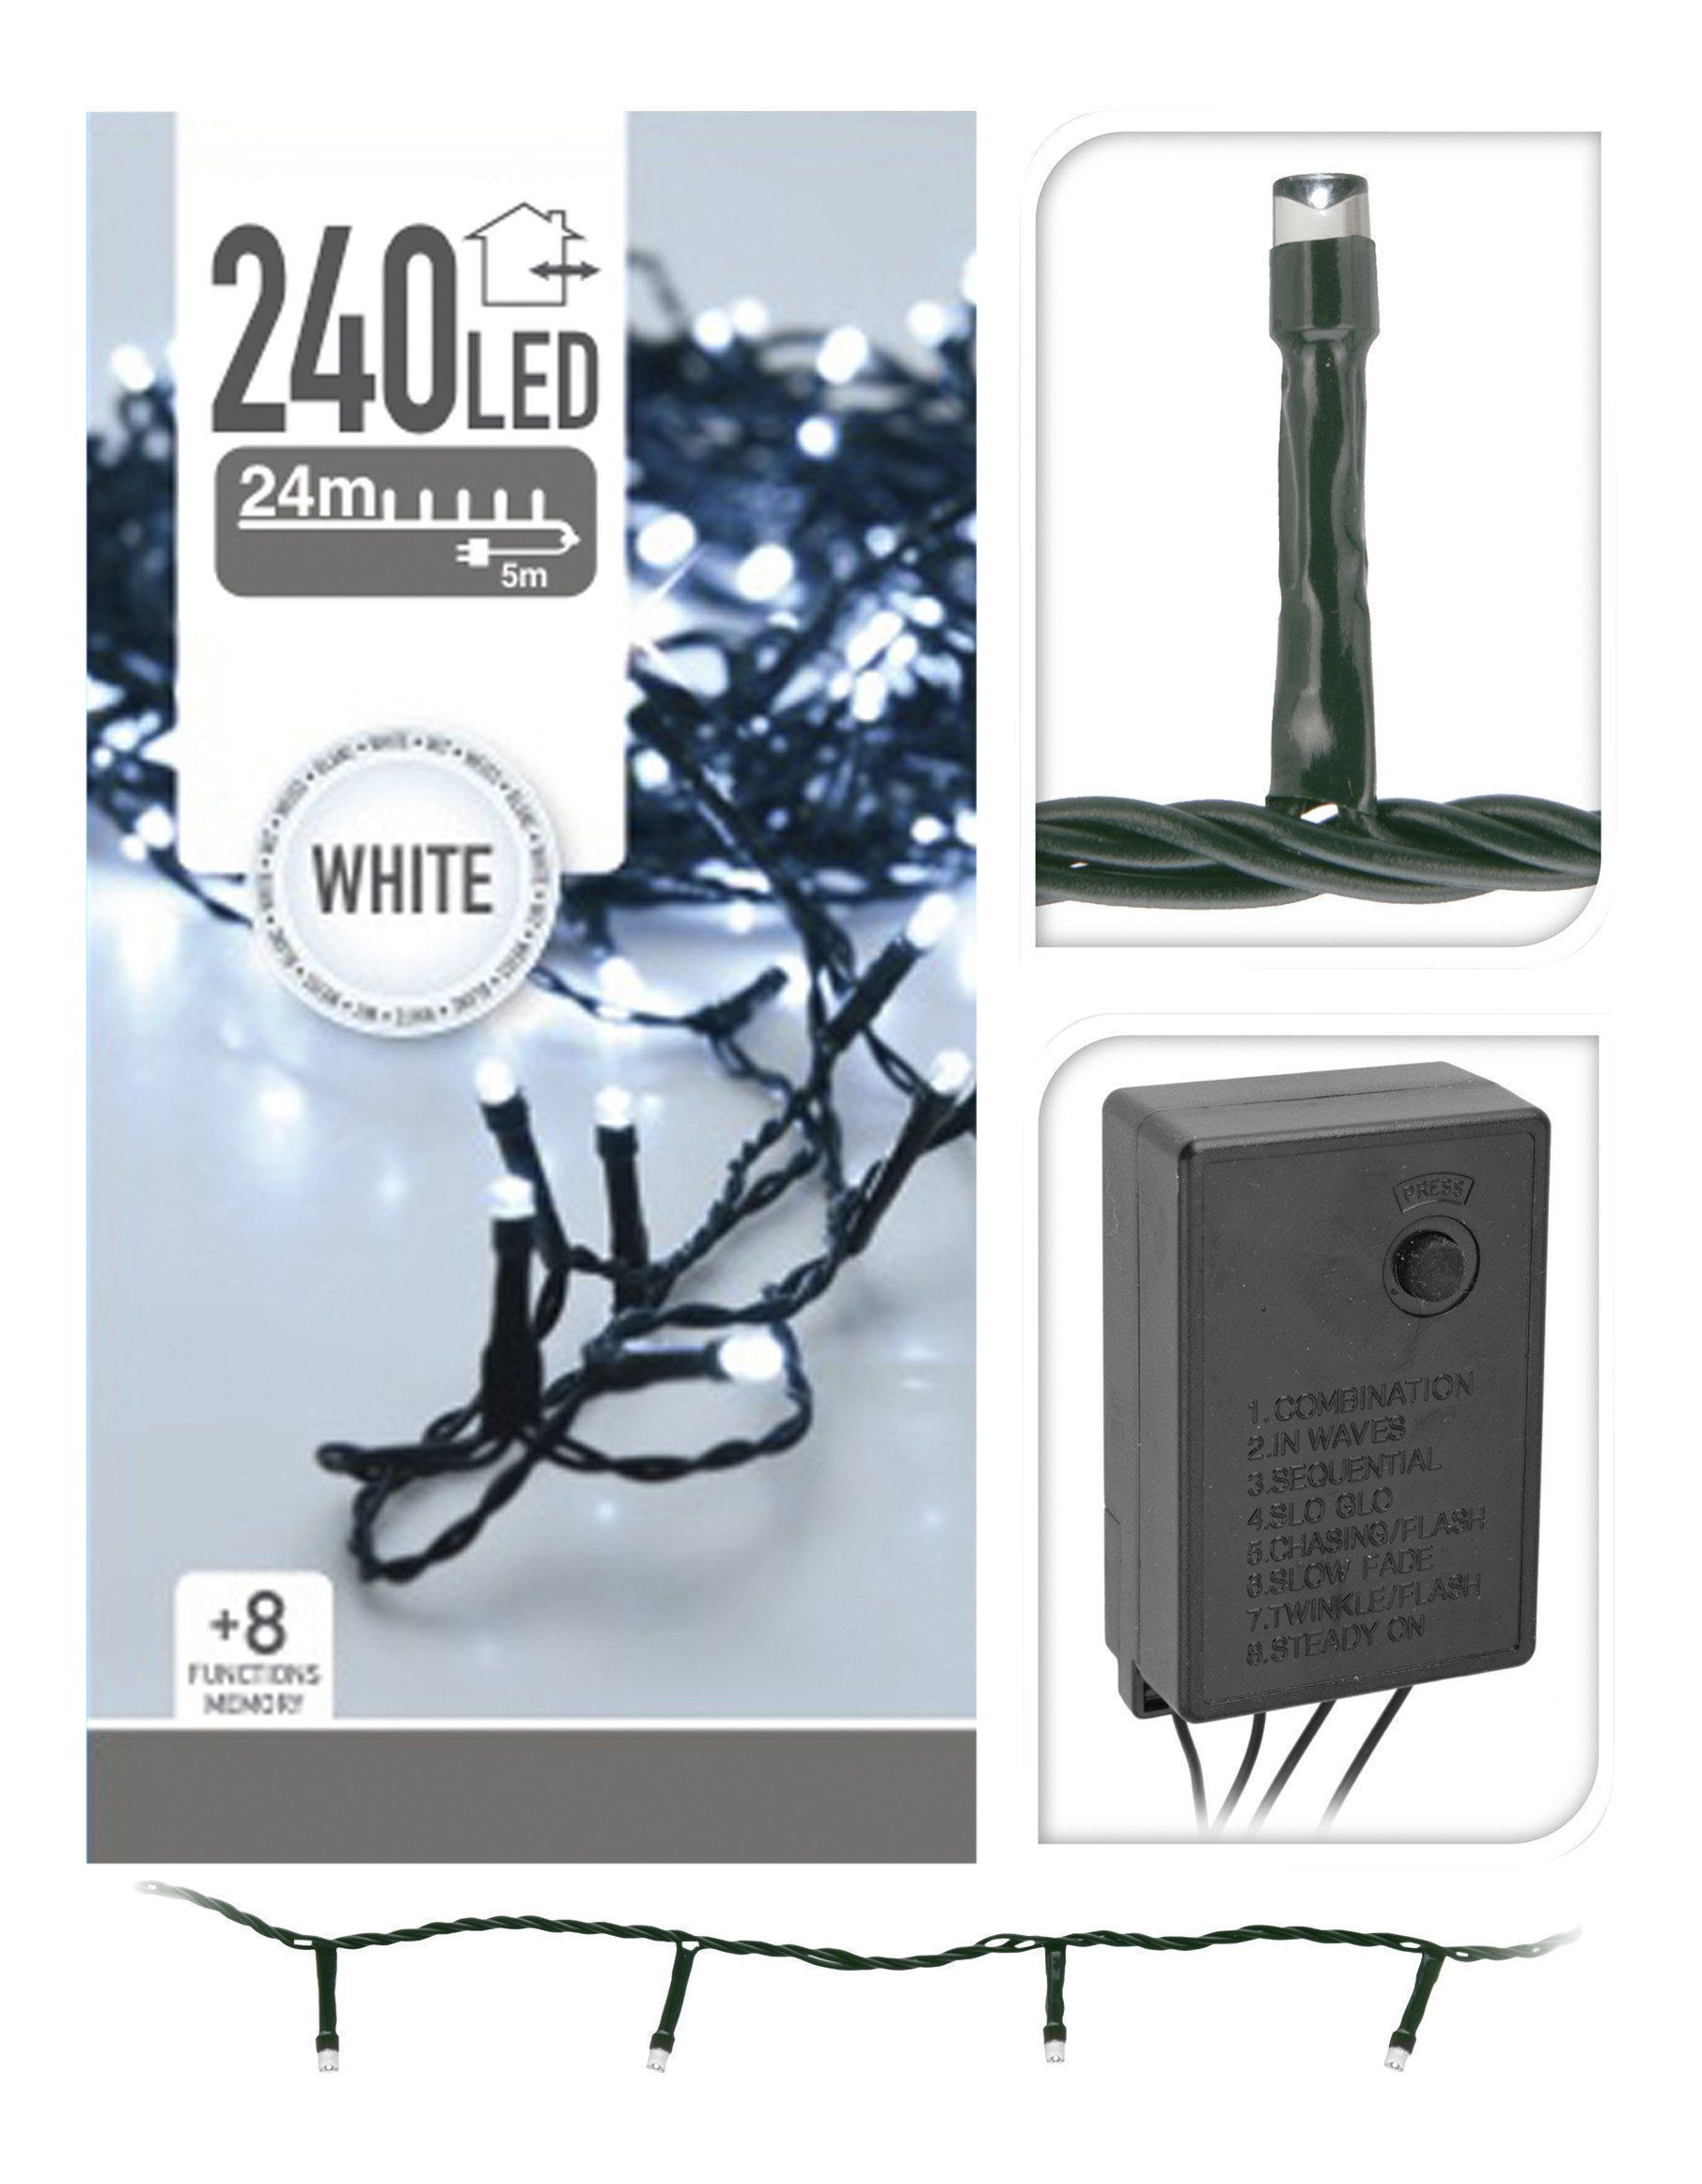 240 Ice White LED String Lights from The Christmas Forest